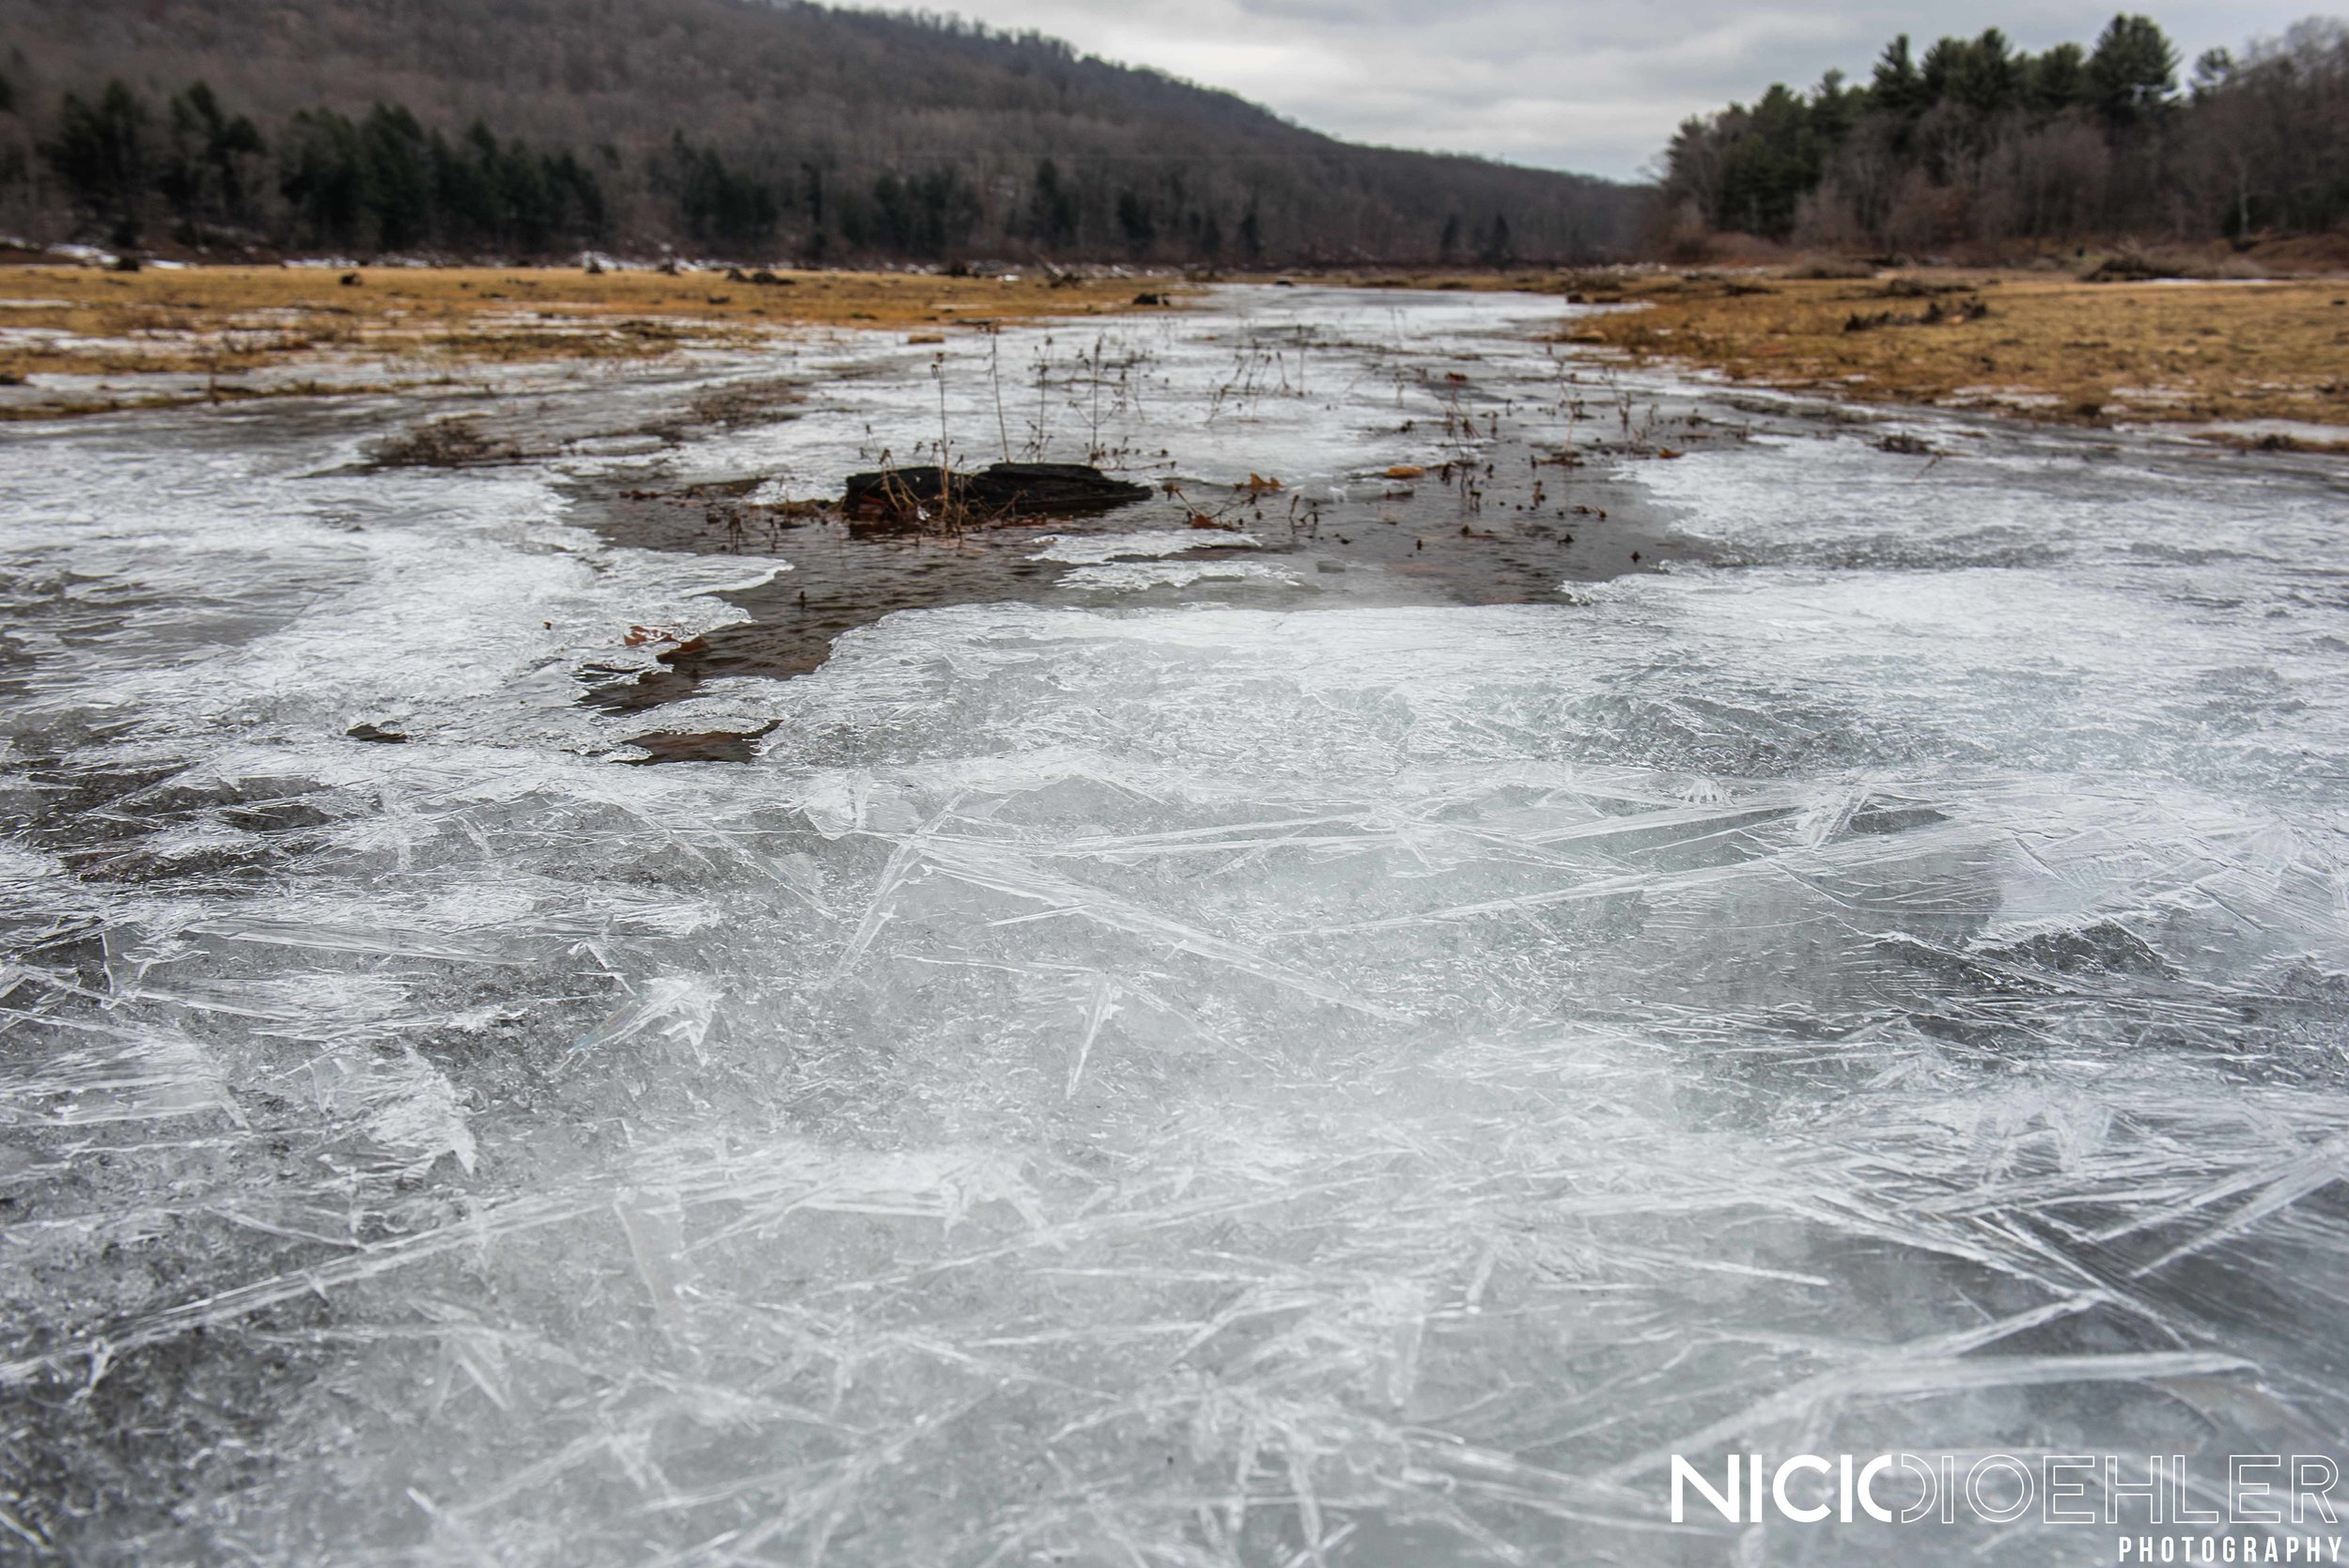 Ice crystals formed a thin layer above the thicker ice.